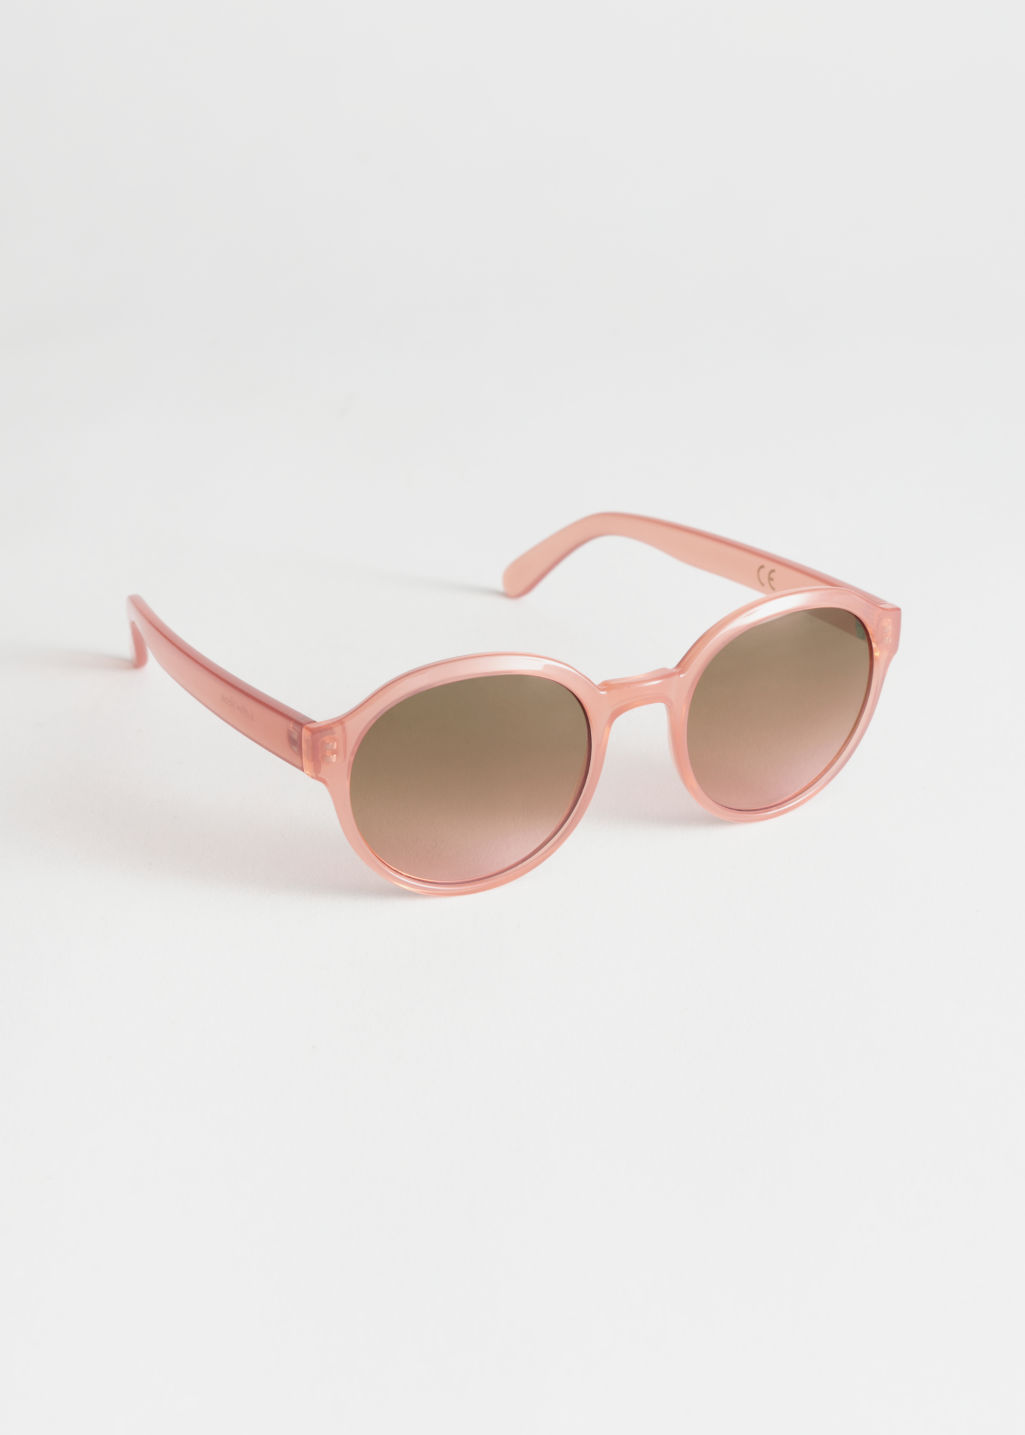 0d54365330 Round Frame Sunglasses - Pink - Sunglasses -   Other Stories